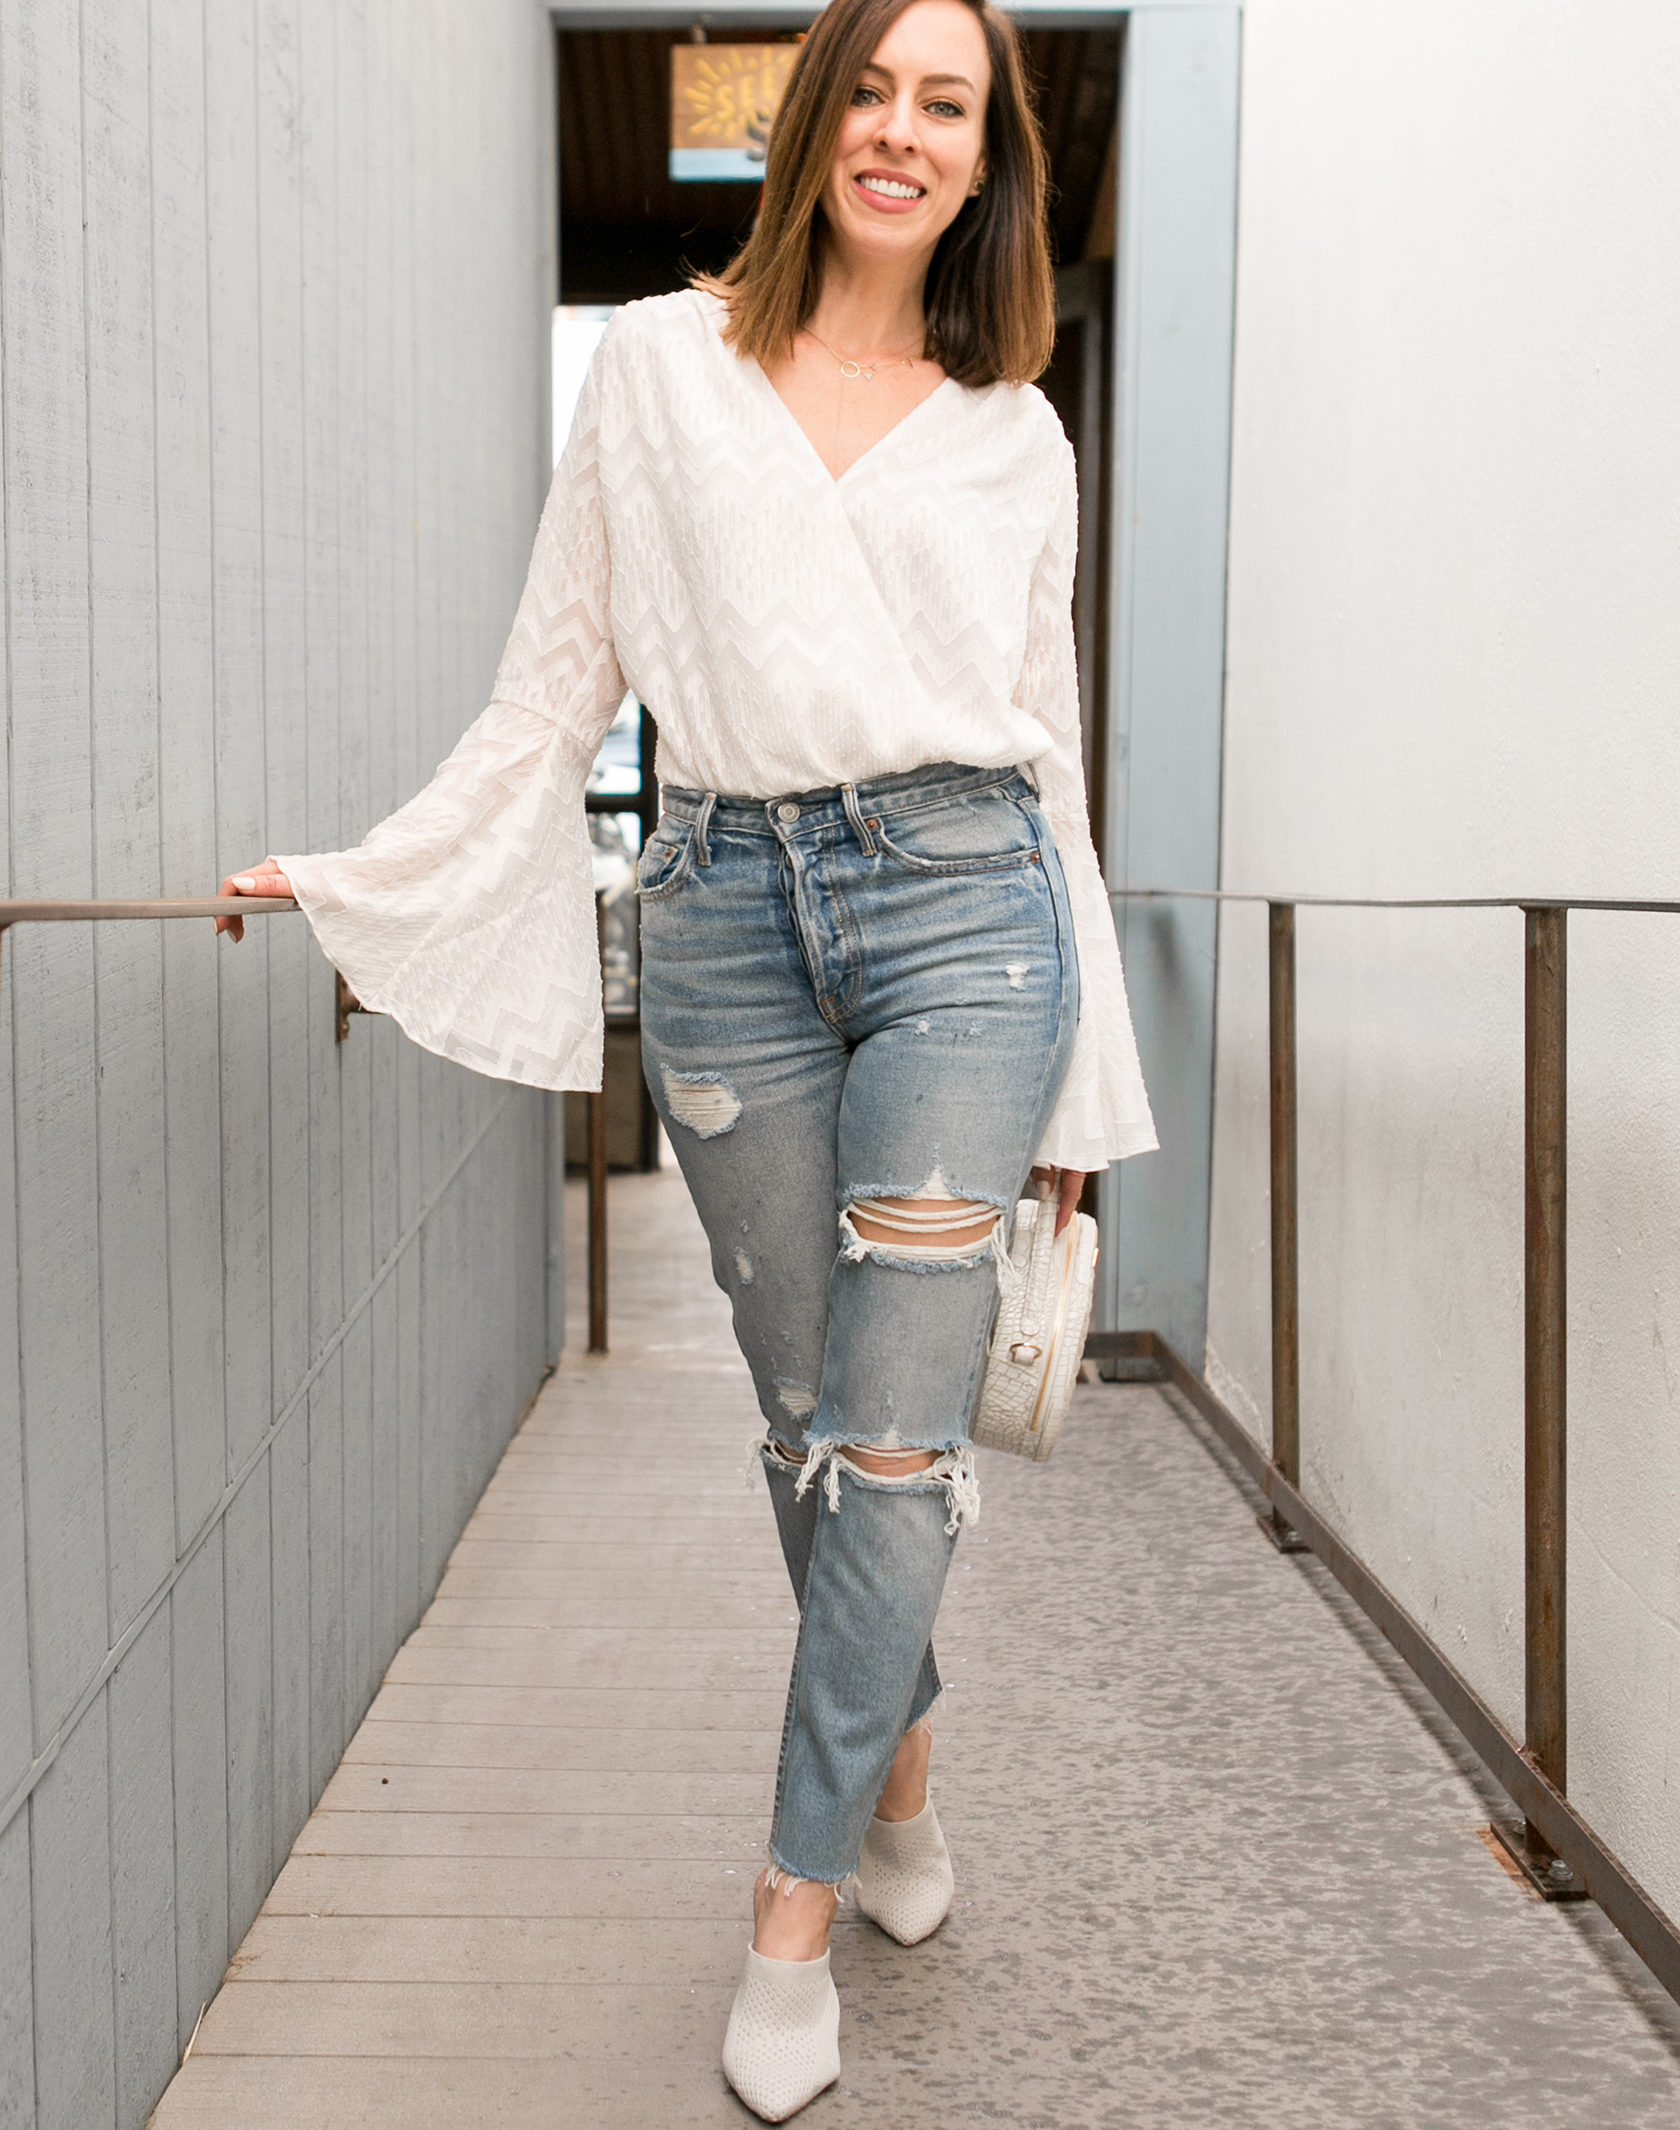 Sydne Style shows the best bell sleeves tops in wayf bodysuit